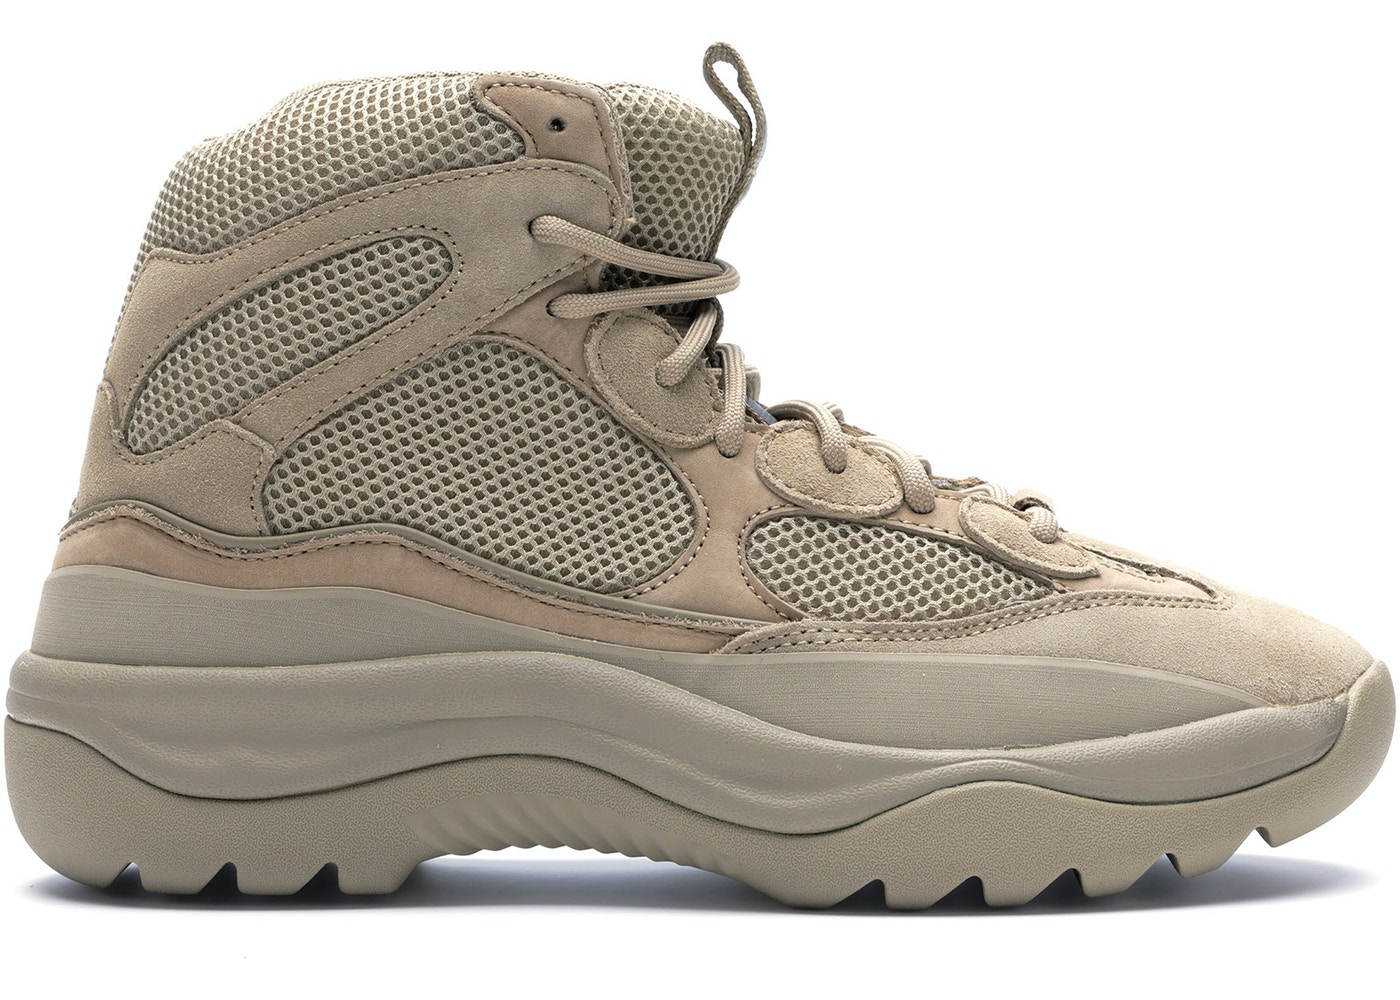 finest selection f4a33 768a0 Yeezy Suede Desert Boot Season 6 Taupe